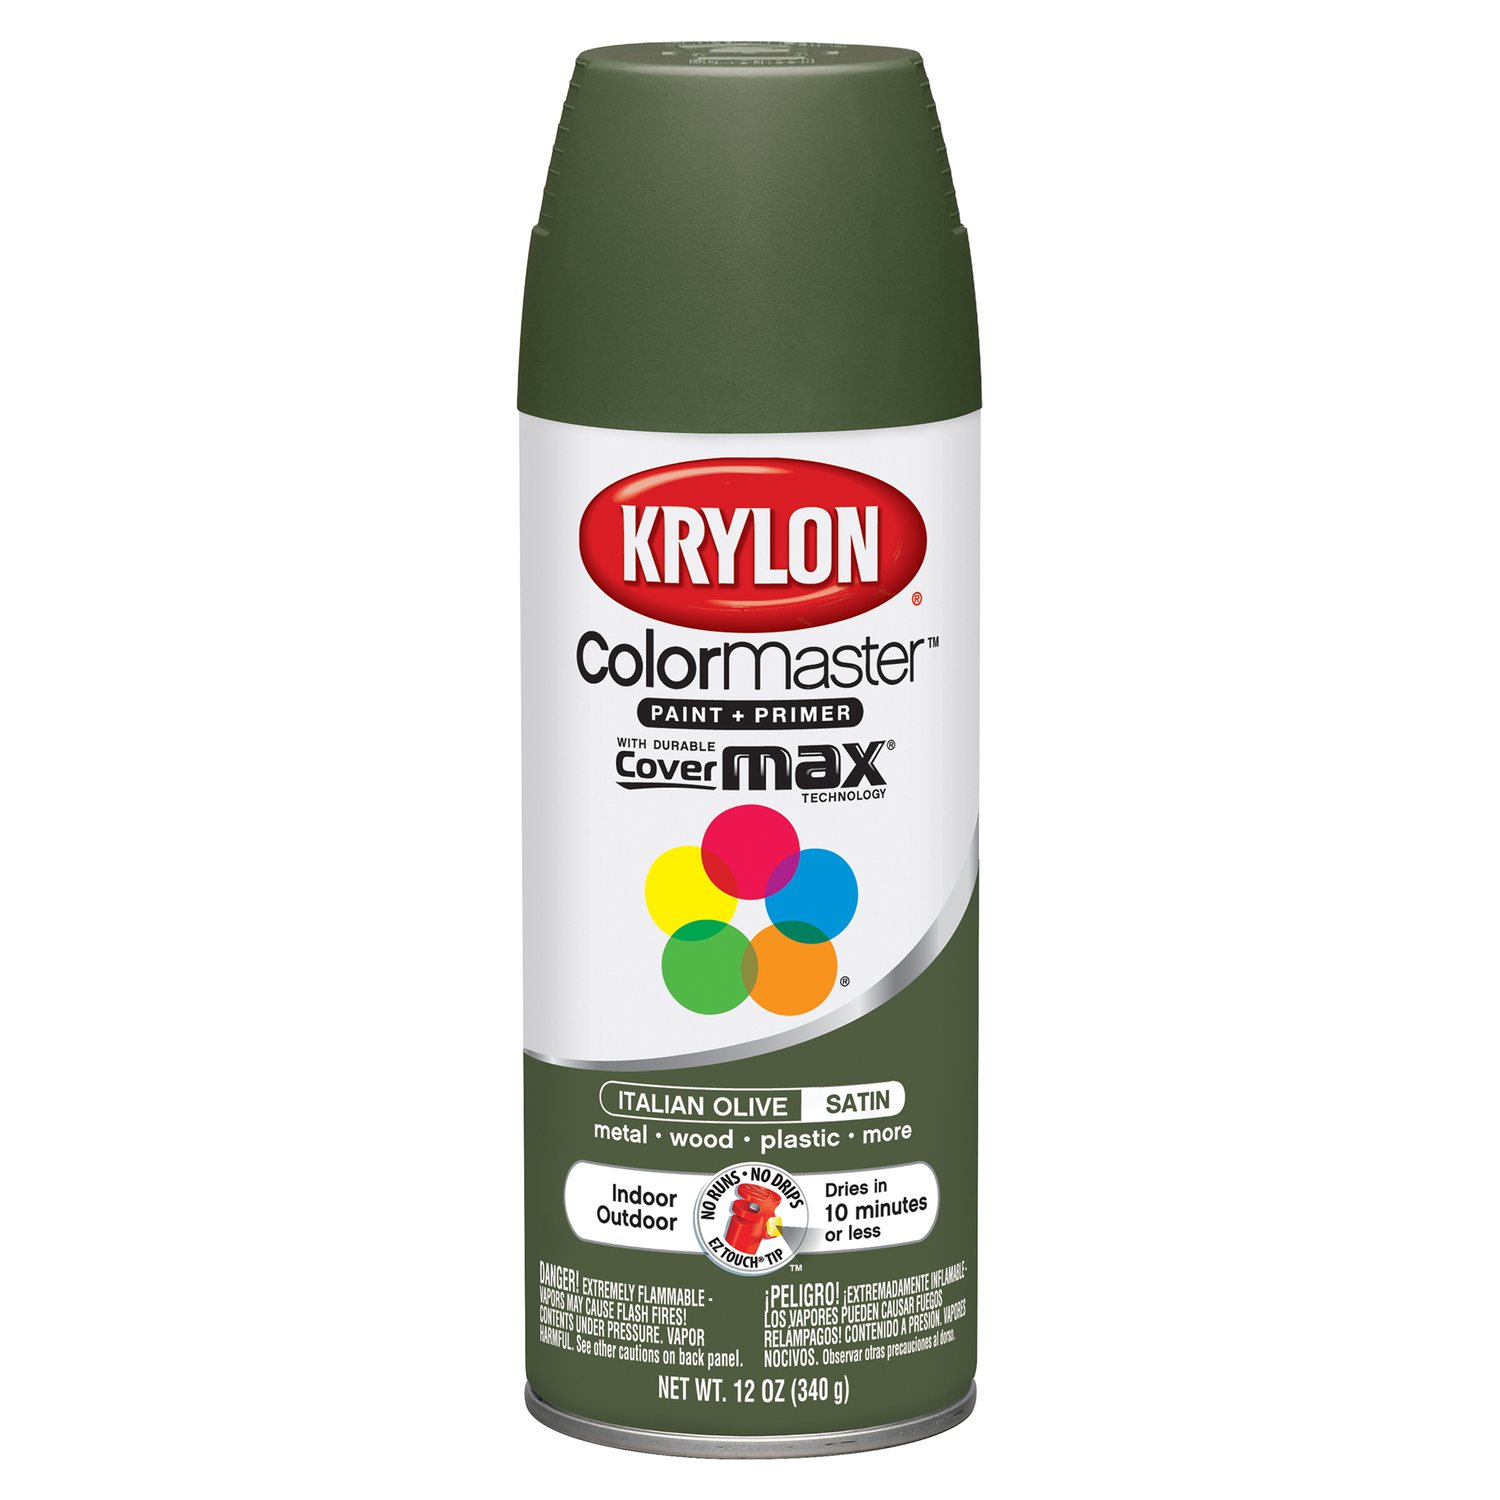 Krylon  ColorMaster  Satin  Italian Olive  Spray Paint  12 oz.